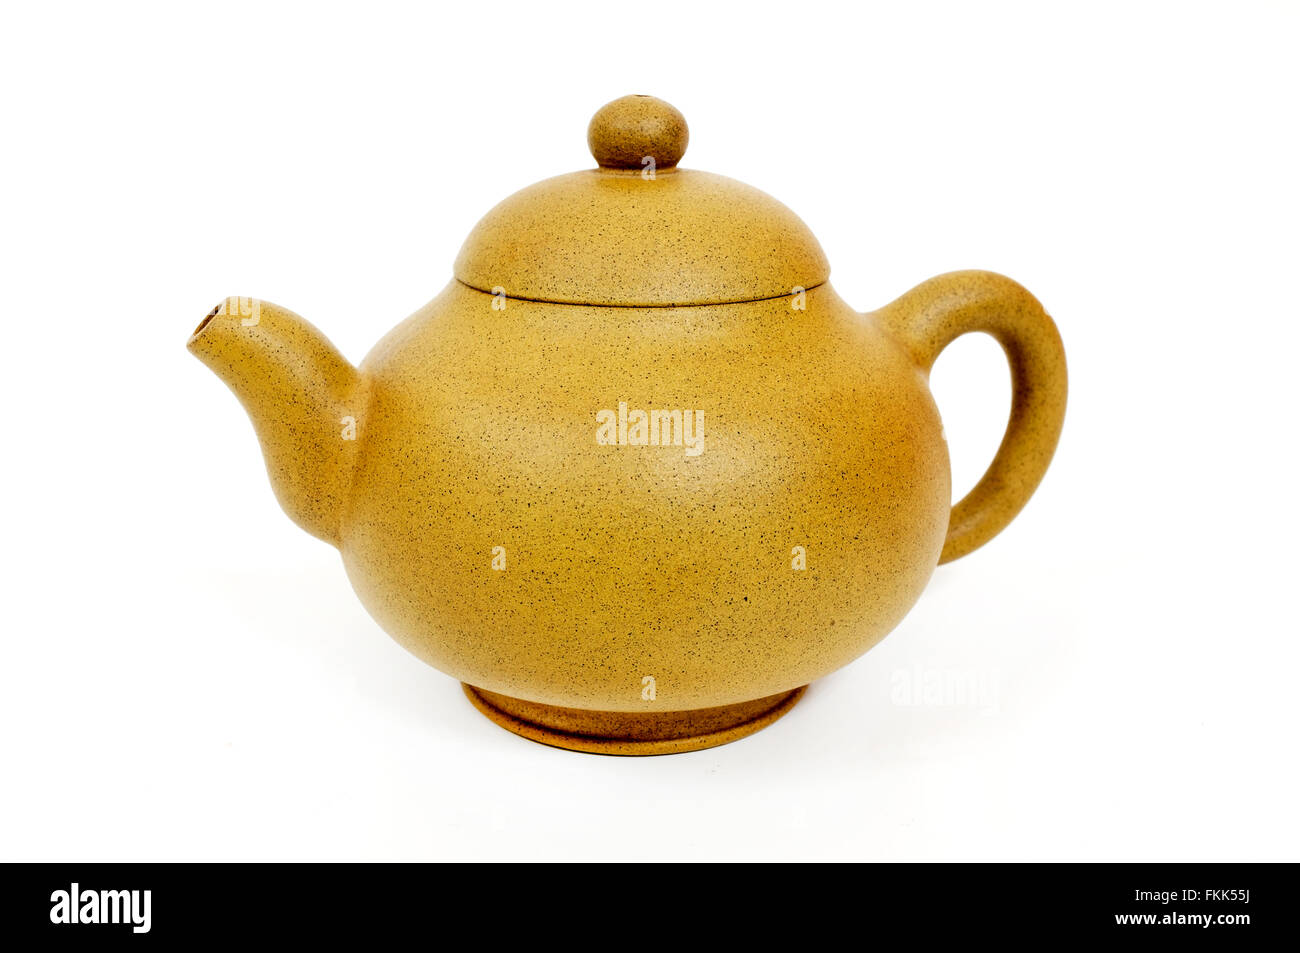 Traditional chinese tea pot on a white background - Stock Image